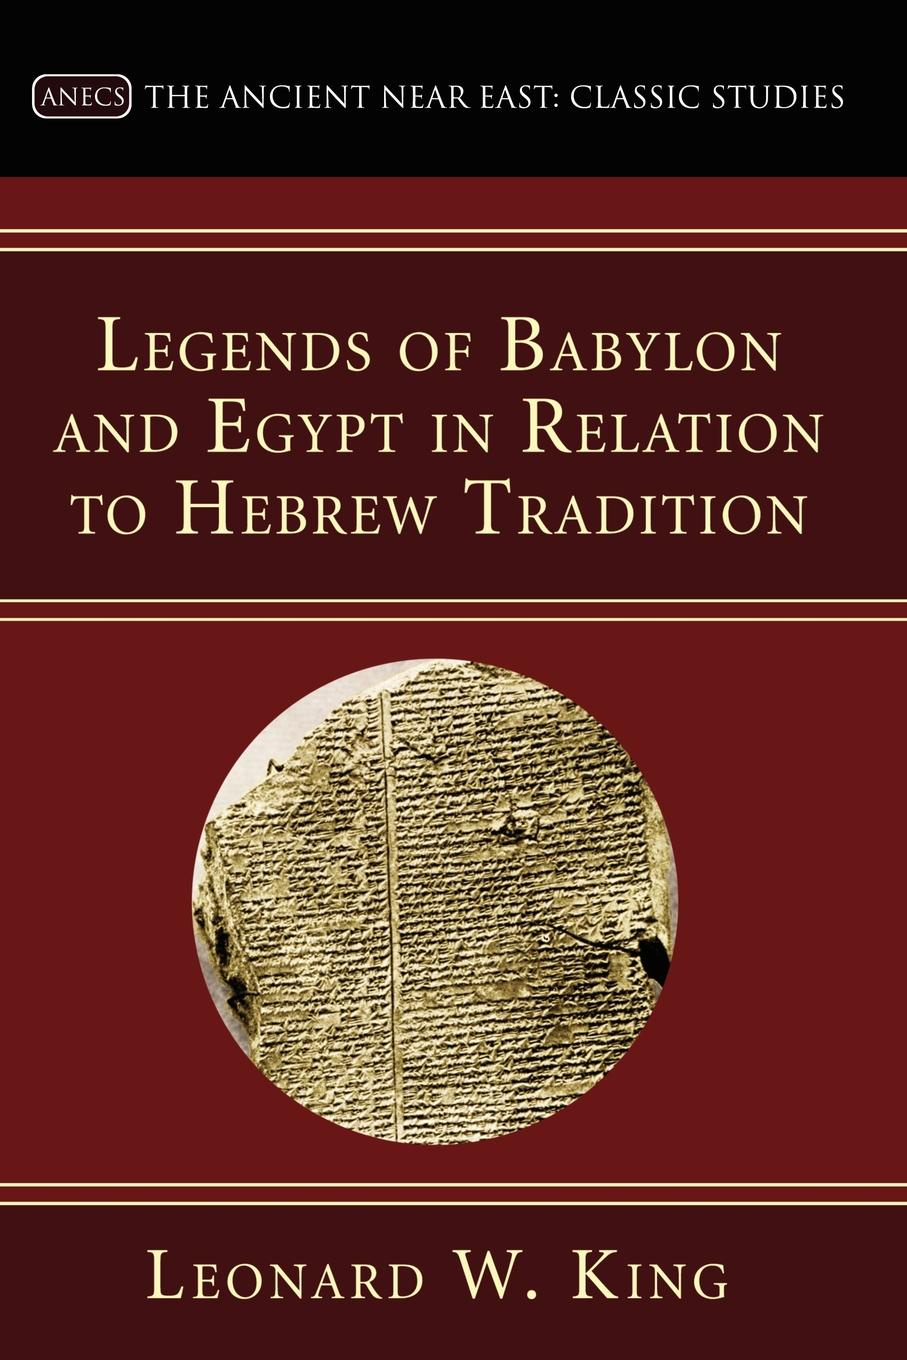 L. W. King Legends of Babylon and Egypt in Relation to Hebrew Tradition marti j steussy gardens in babylon narrative and faith in the greek legends of daniel